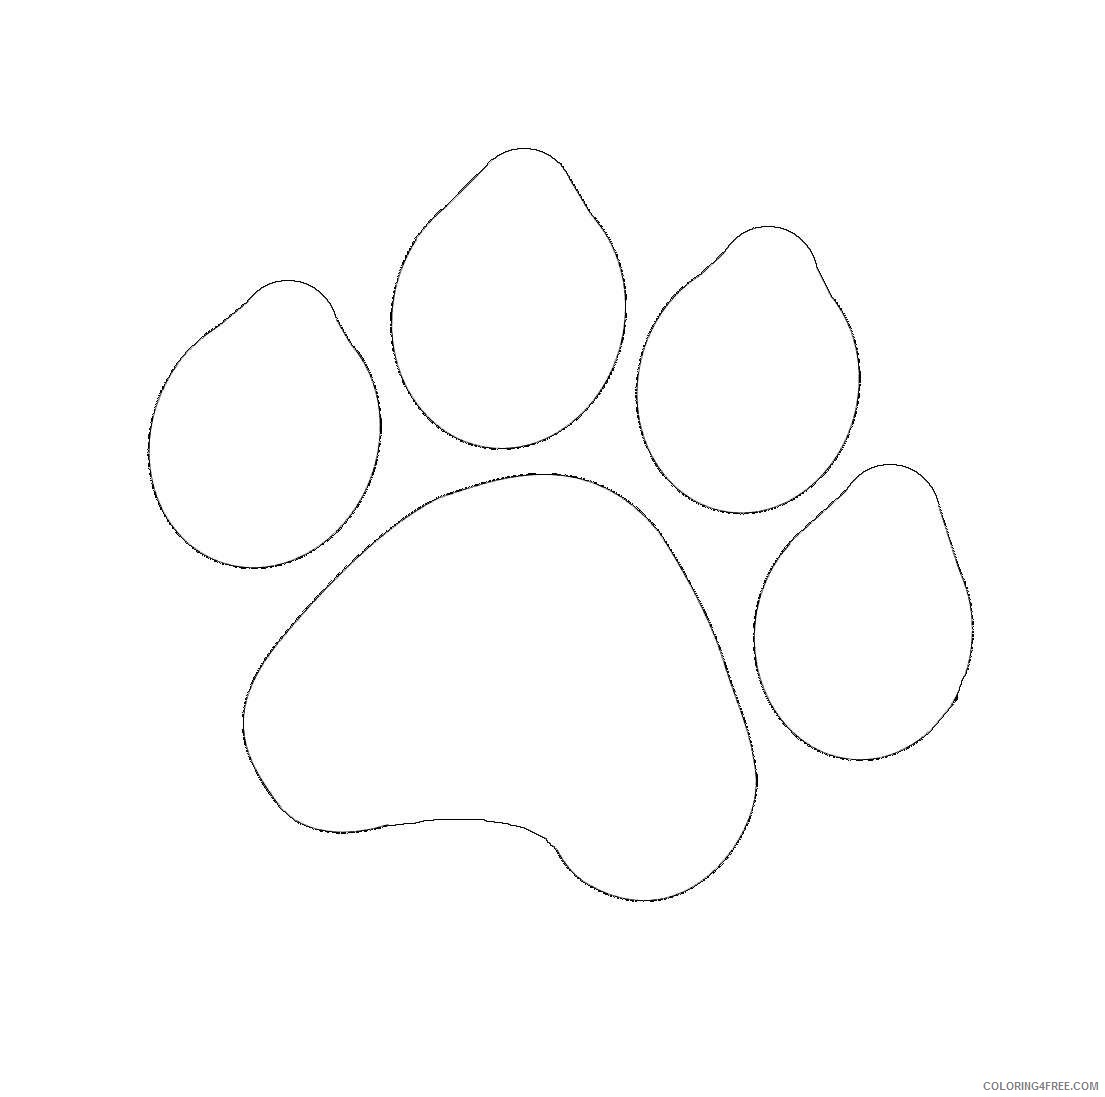 grizzly bear paw print Zm9KFB coloring